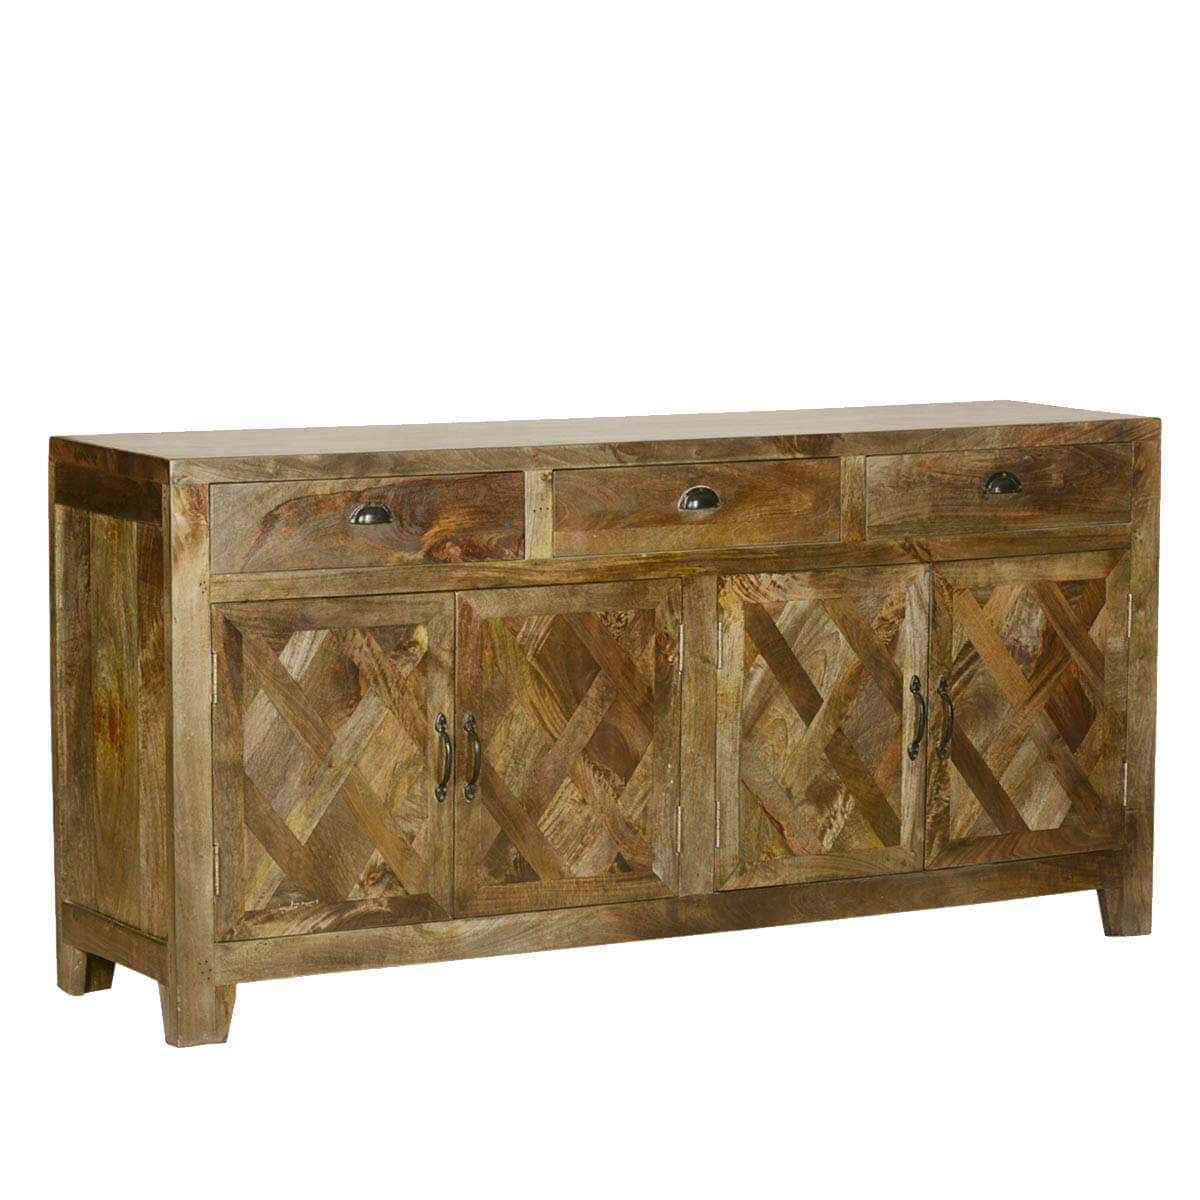 Parquet Farmhouse Mango Wood Rustic Sideboard Buffet Cabinet. Full resolution‎  file, nominally Width 1200 Height 1200 pixels, file with #B07A1B.